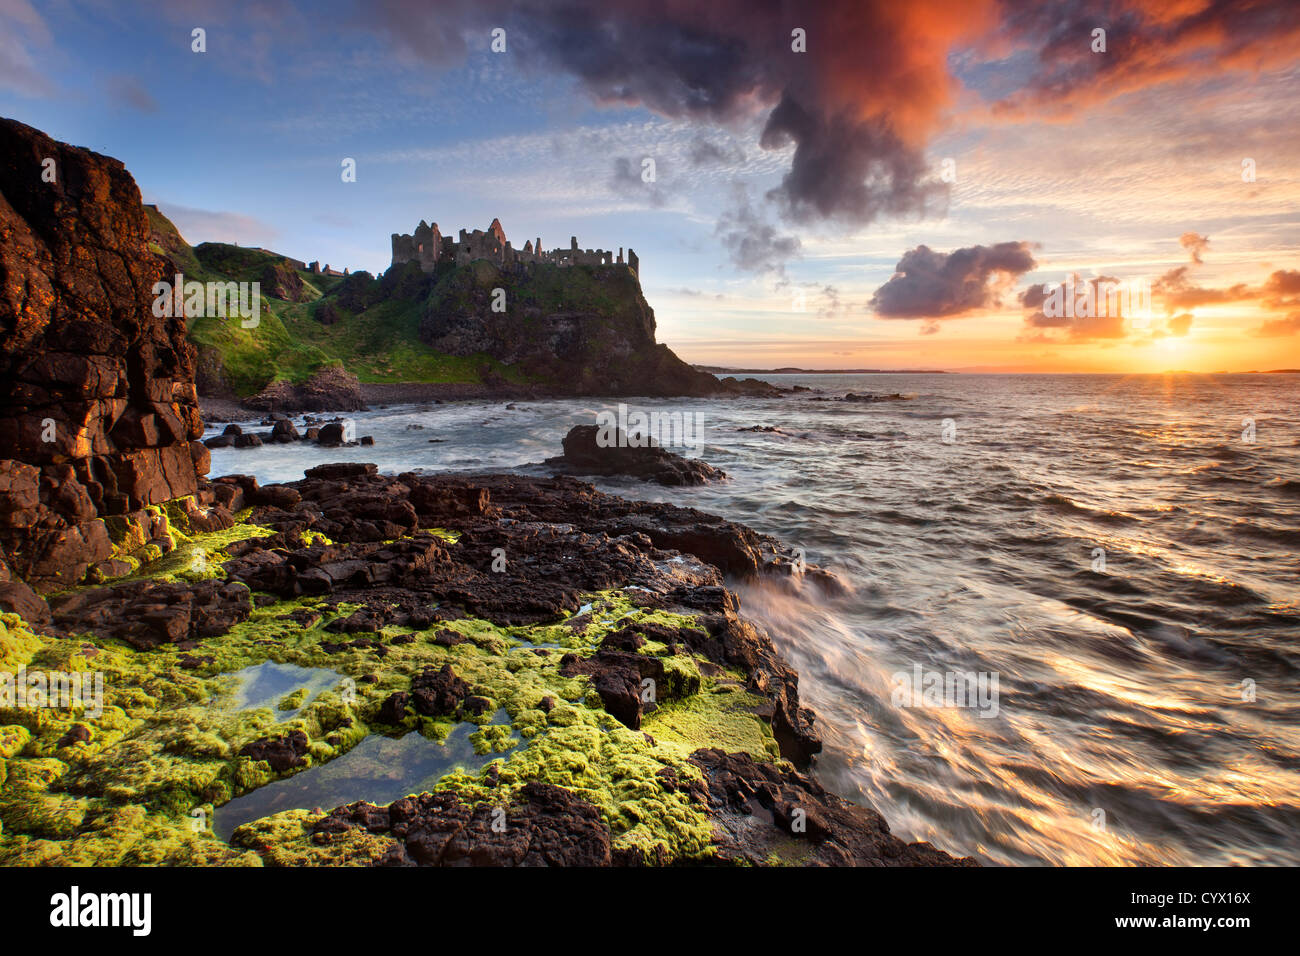 Duluce castle at sunset on the Antrim coast, Northern Ireland. Stock Photo